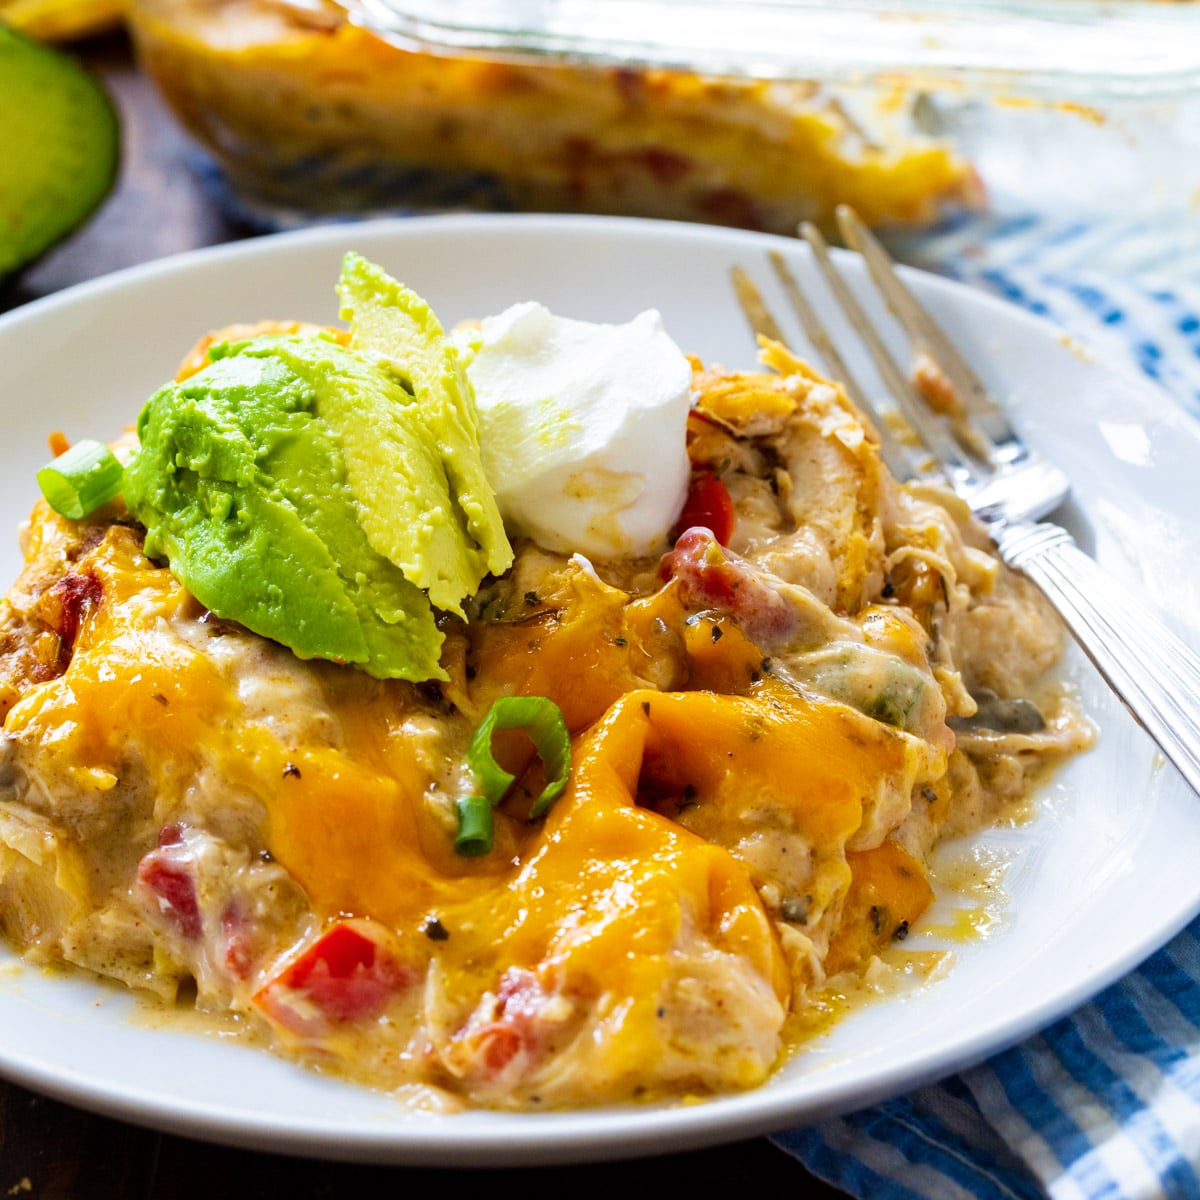 King Ranch Chicken Casserole topped with avocado on a plate.